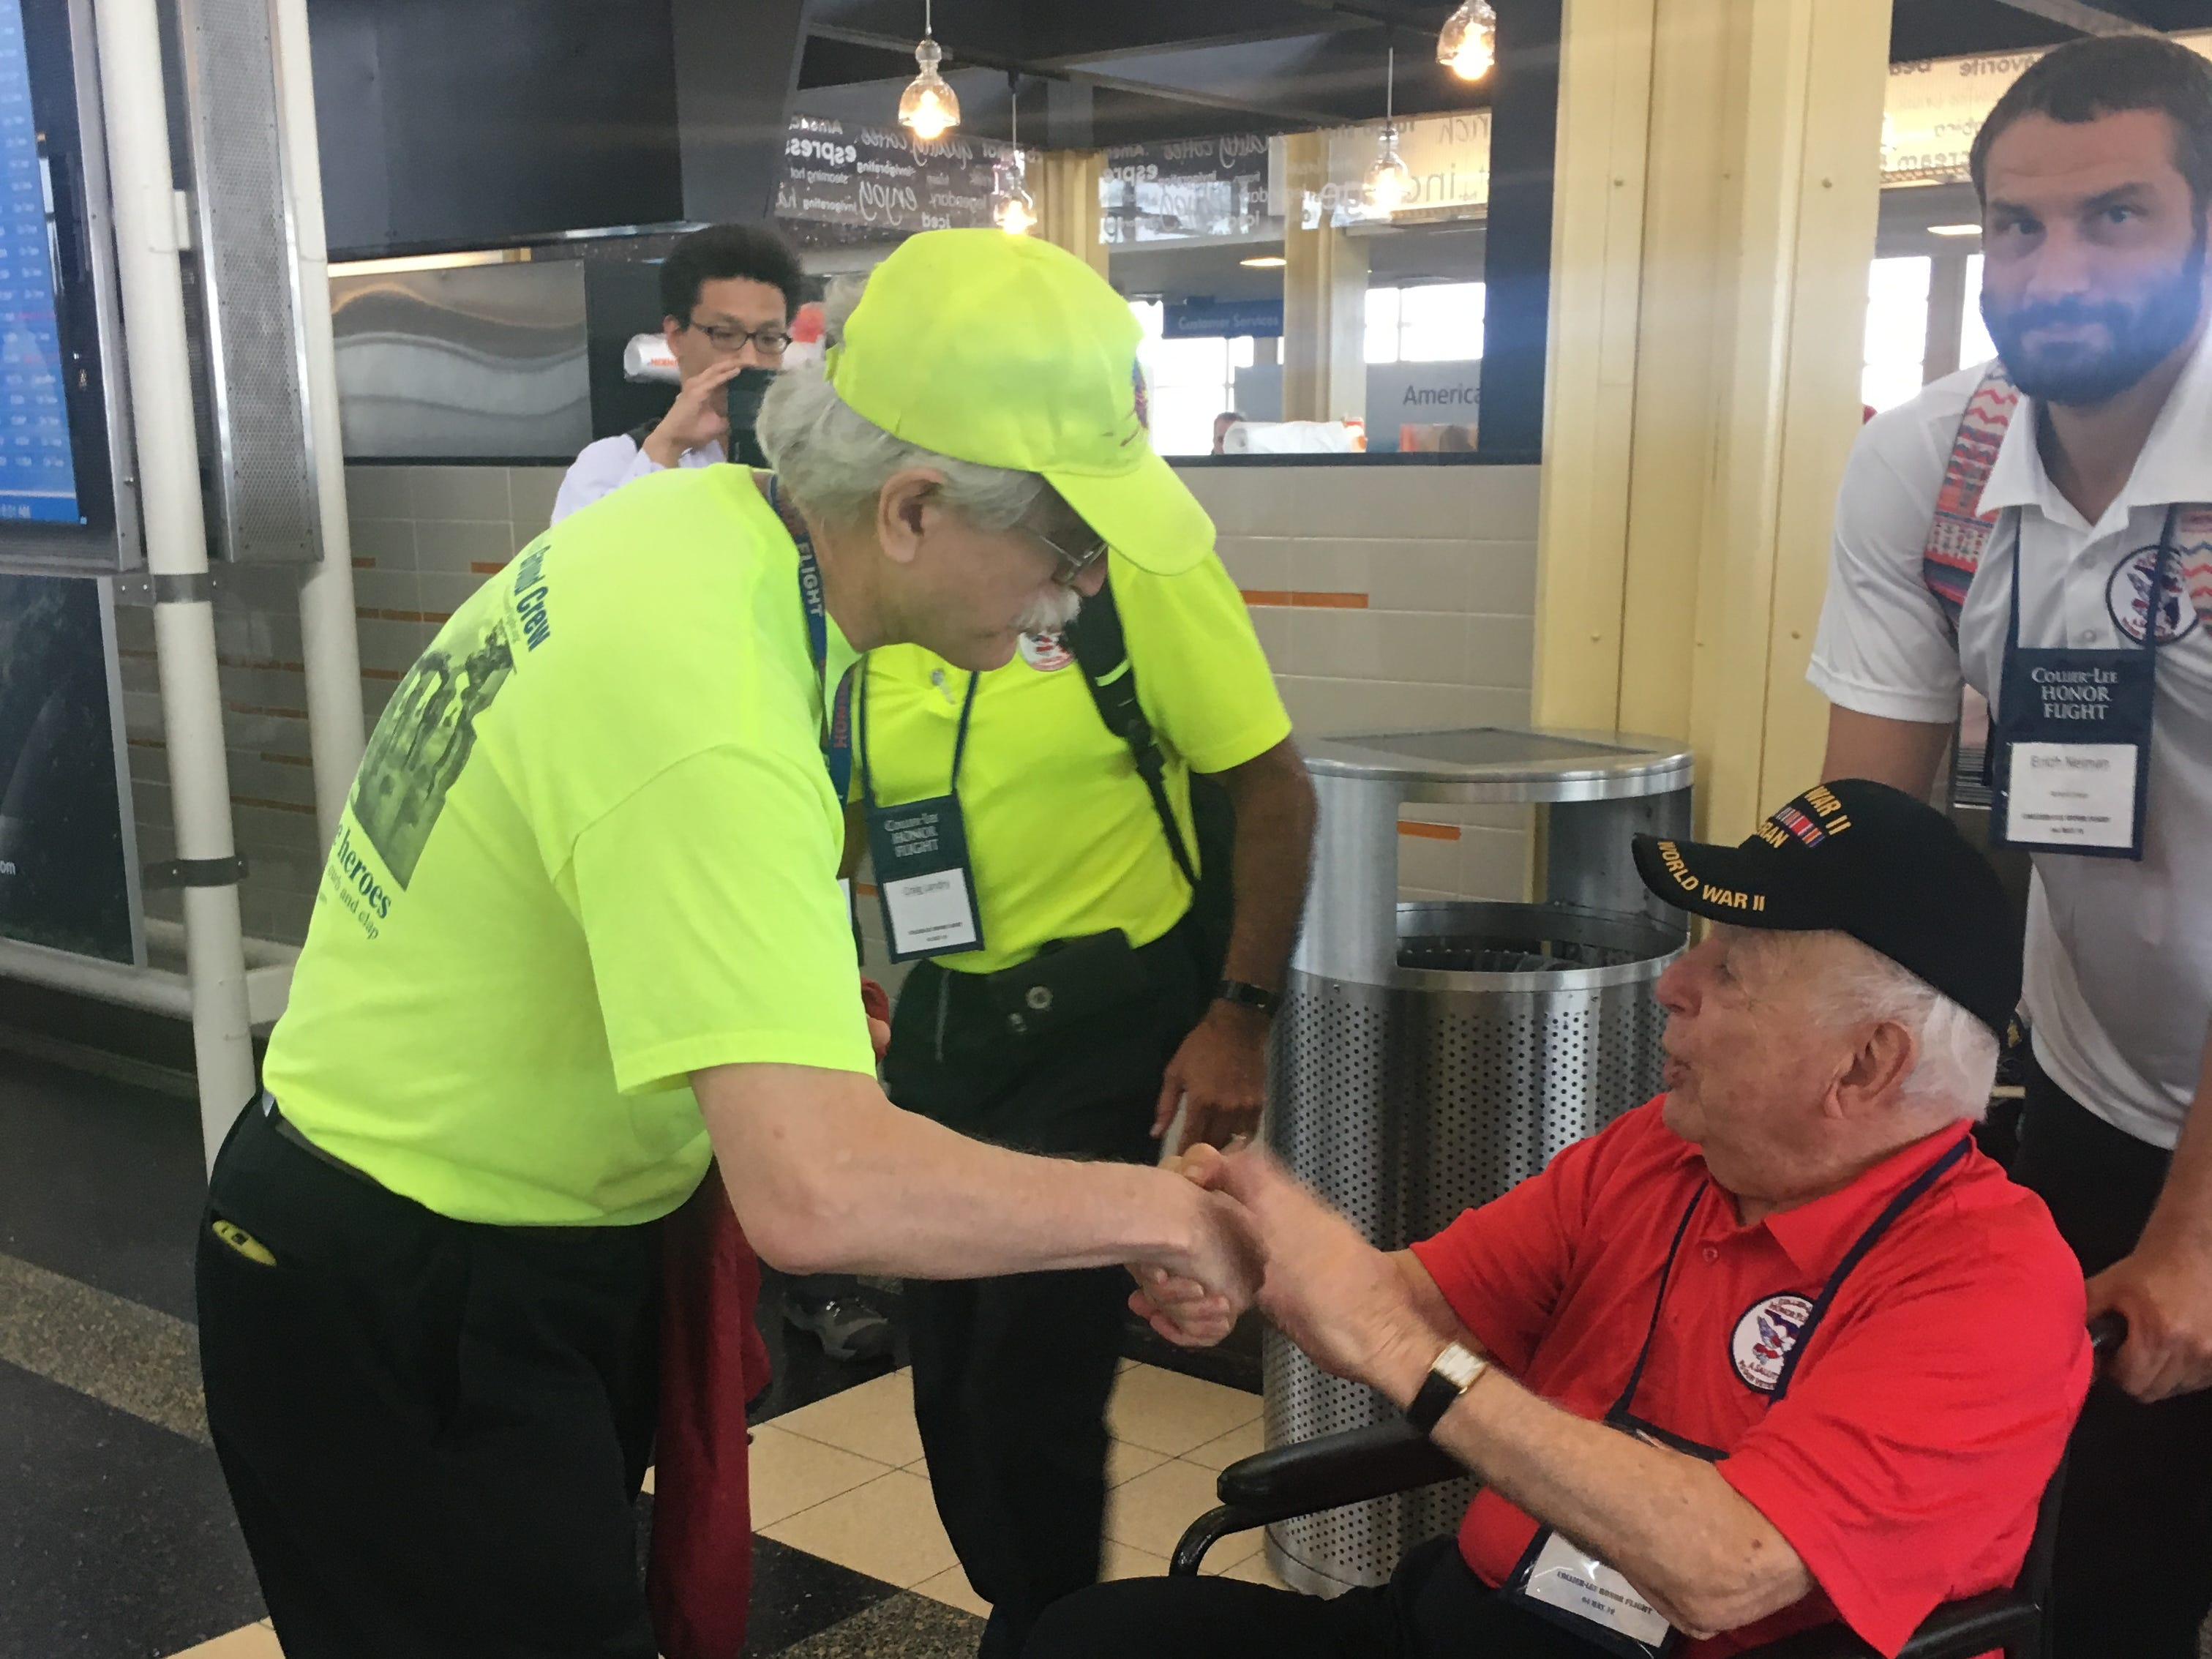 David Benbennick, an Honor Flight volunteer from Vienna, Virginia, greets Arnold Levy Saturday, May 4, 2019, in Washington, D.C. Benbennick says he's greeted thousands of Honor Flights over the years.